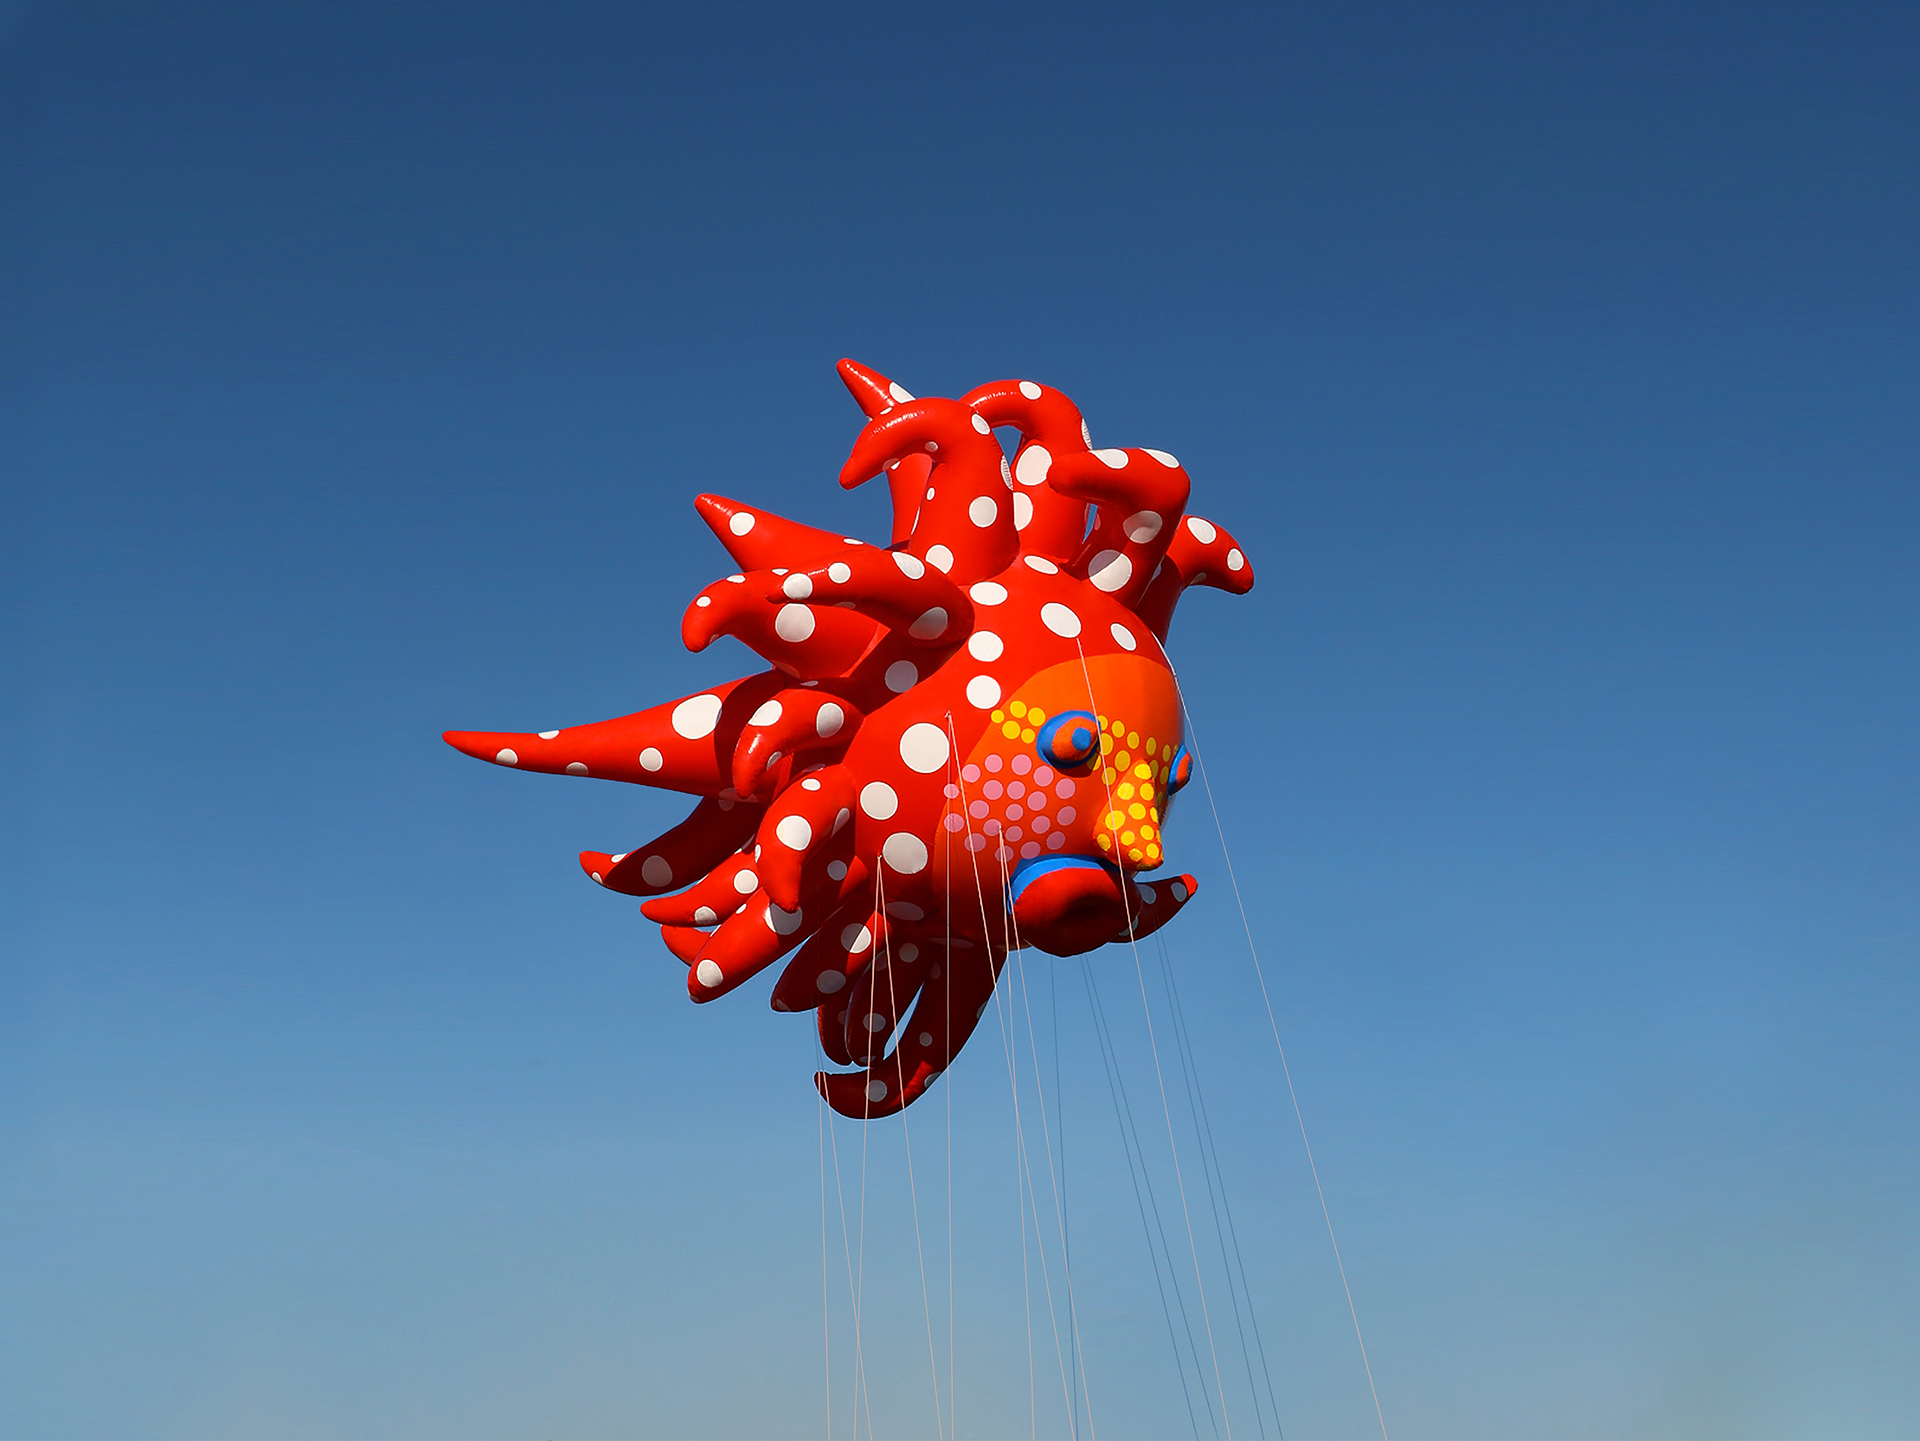 A photo of a balloon by Yayoi Kusama, titled Love Flies Up to the Sky, dated 2019.